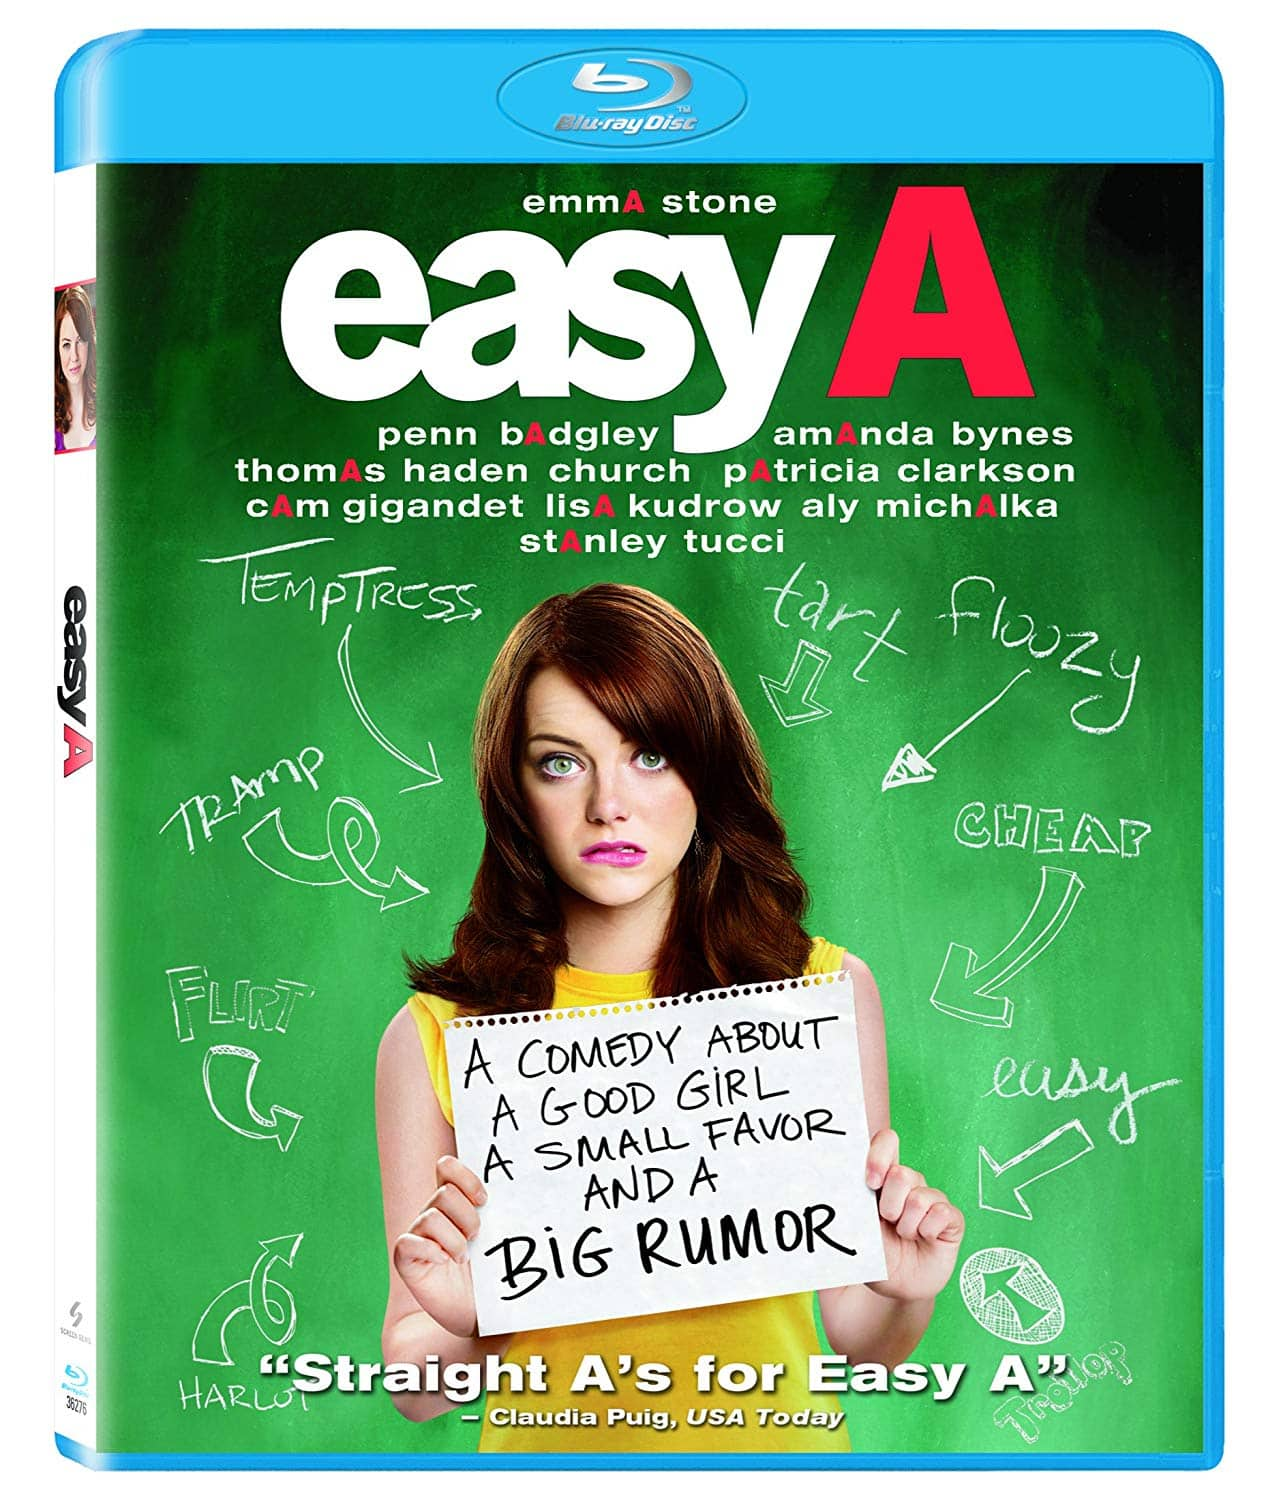 Easy A (Emma Stone) $4.85 Blu-ray on Amazon.  Free Shipping with Prime or $25 Purchase.